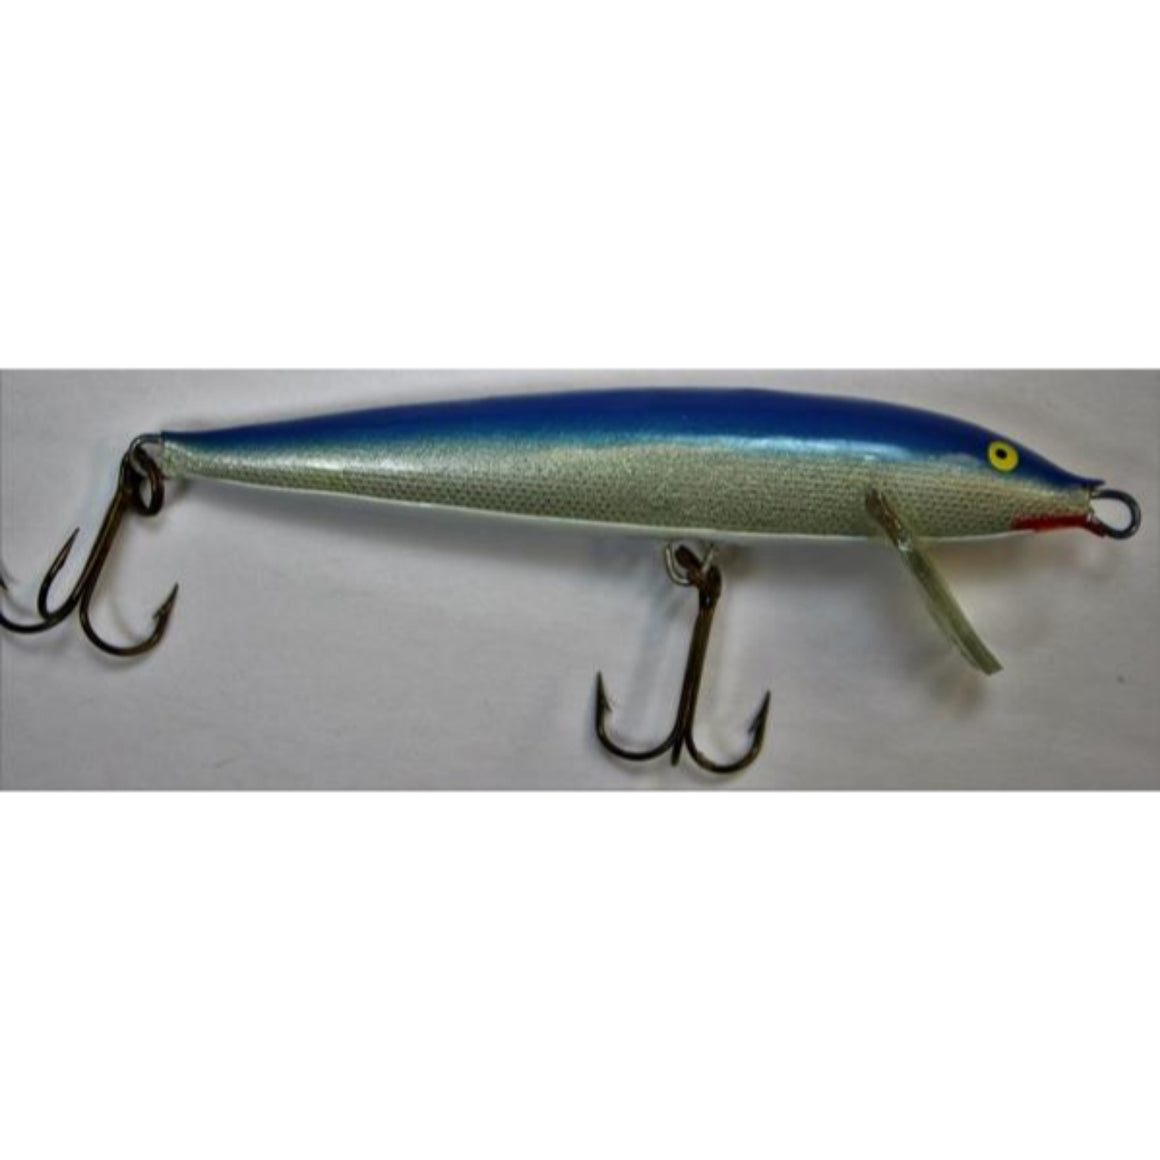 'Blue Rapala Countdown Fishing Lure Made in Finland'